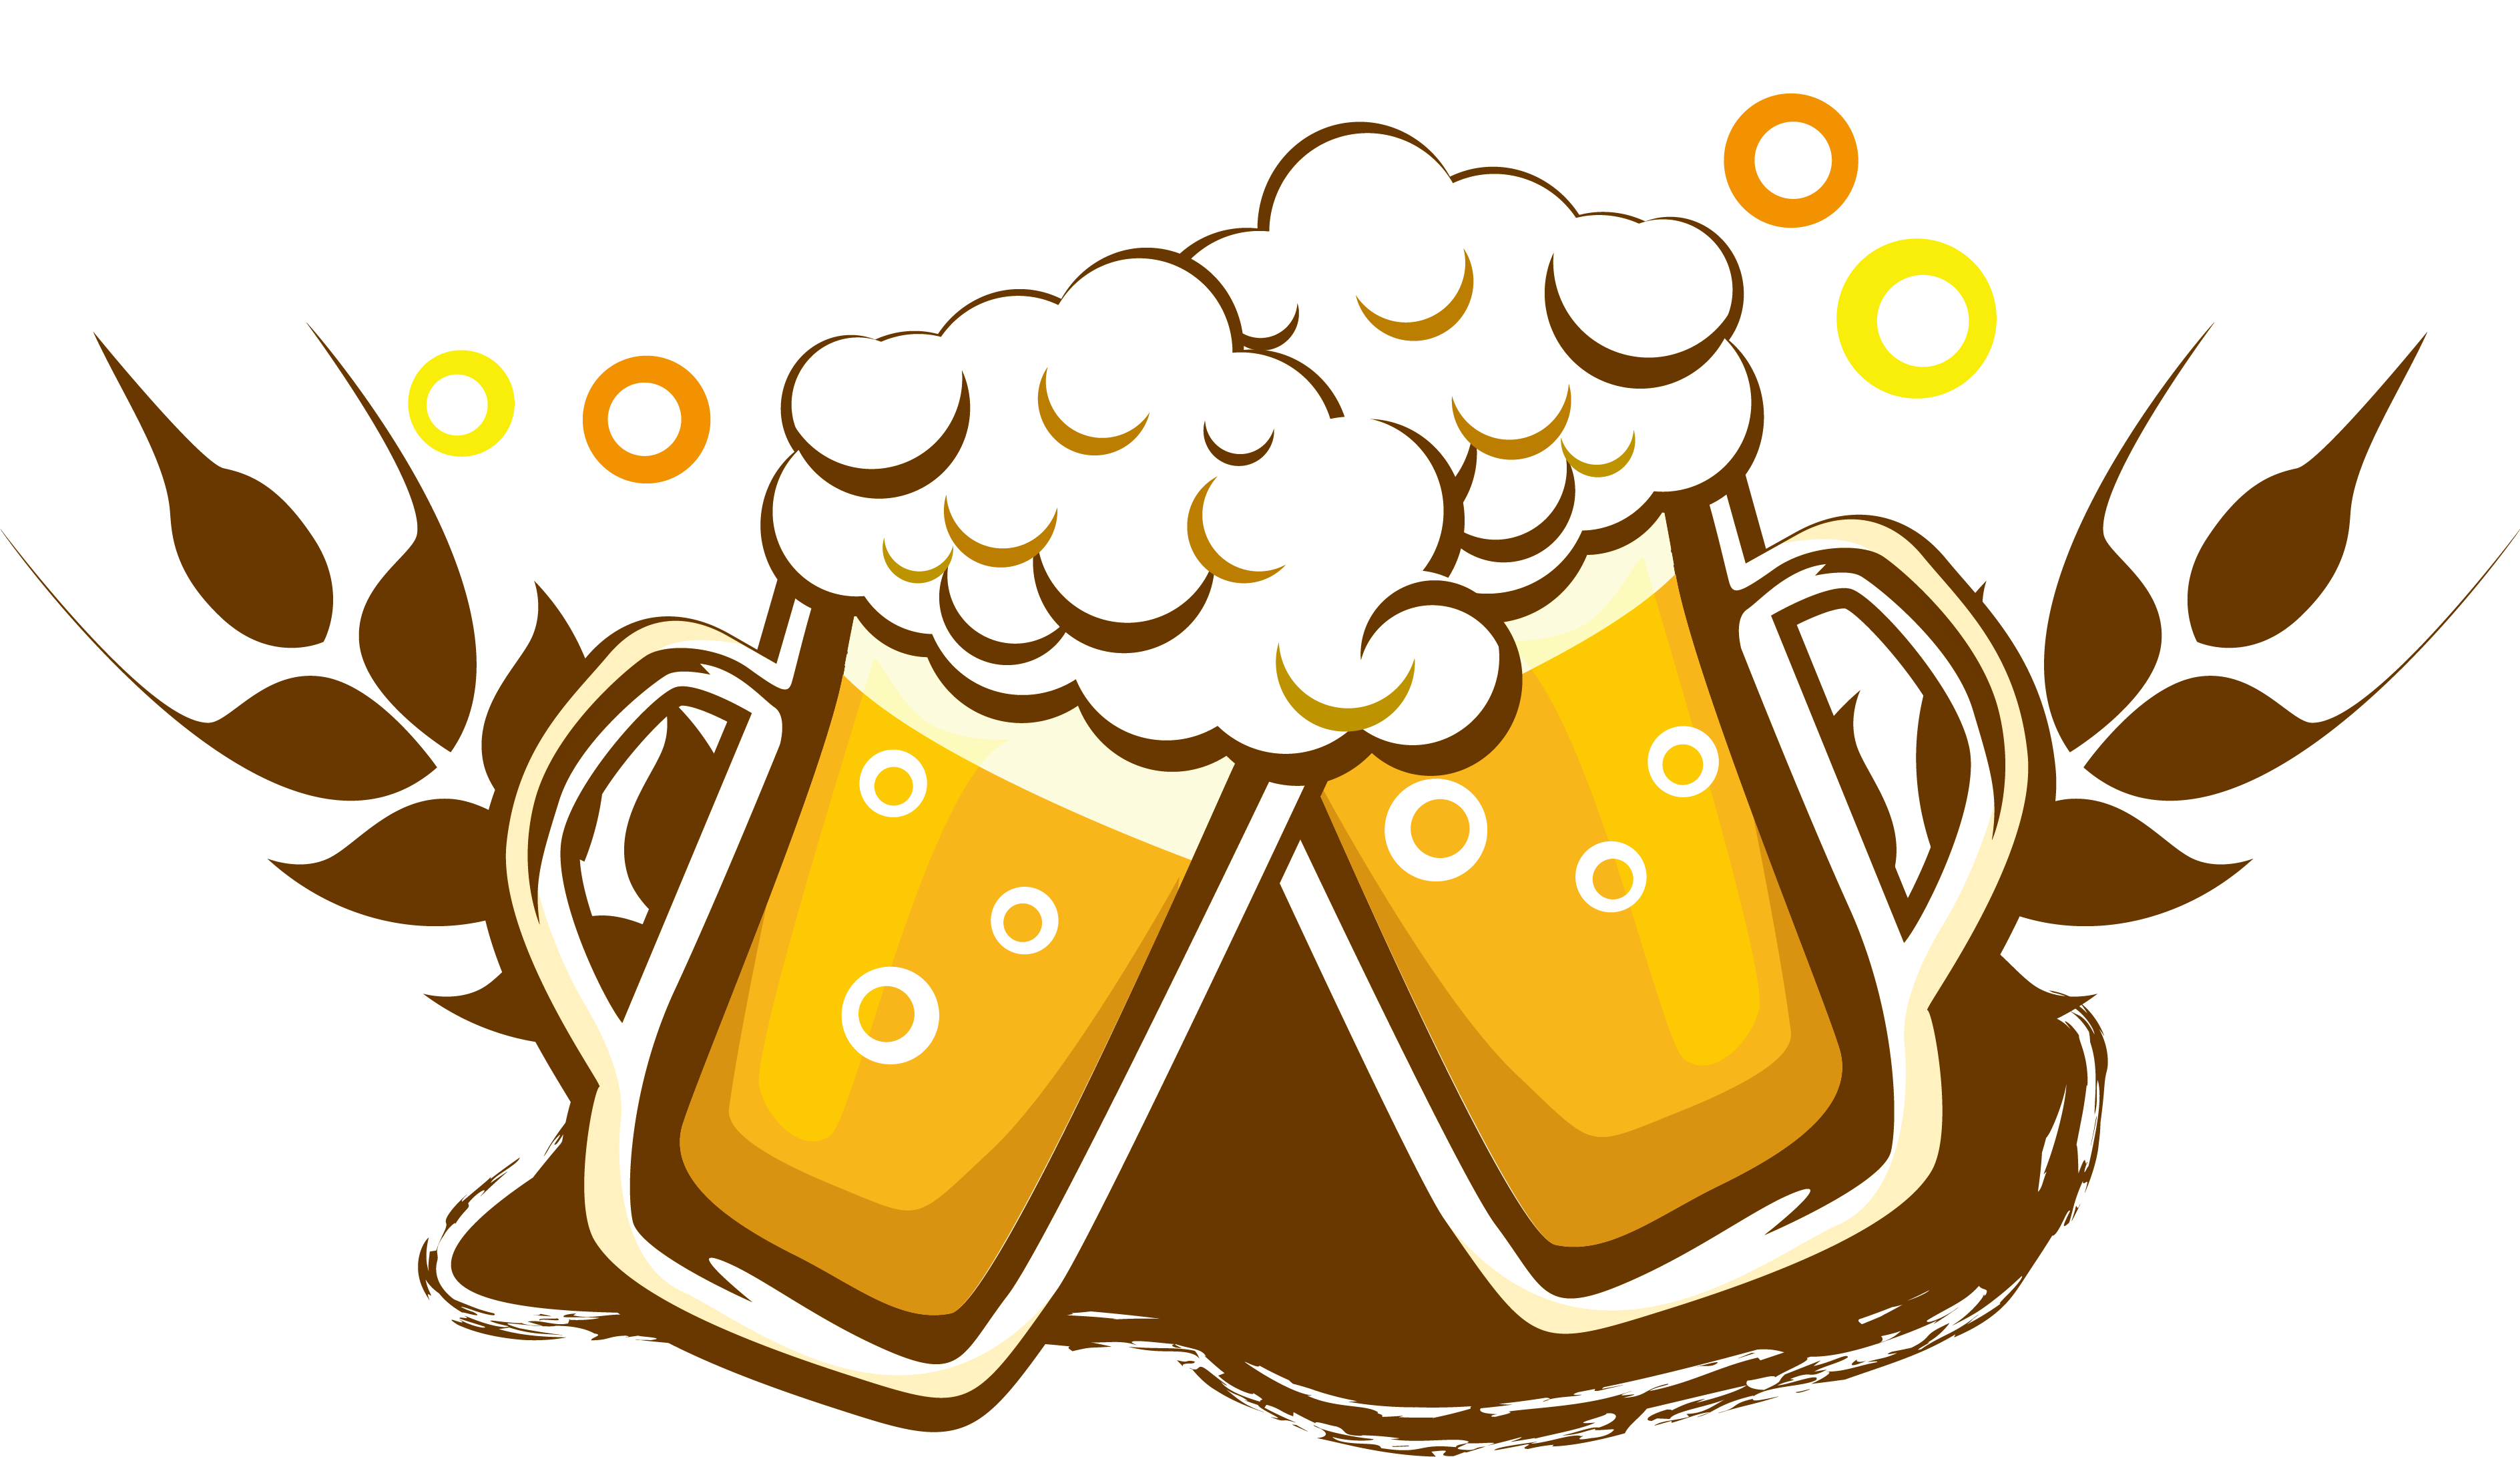 14 cliparts for free. Download Beer clipart beer wine and use in.